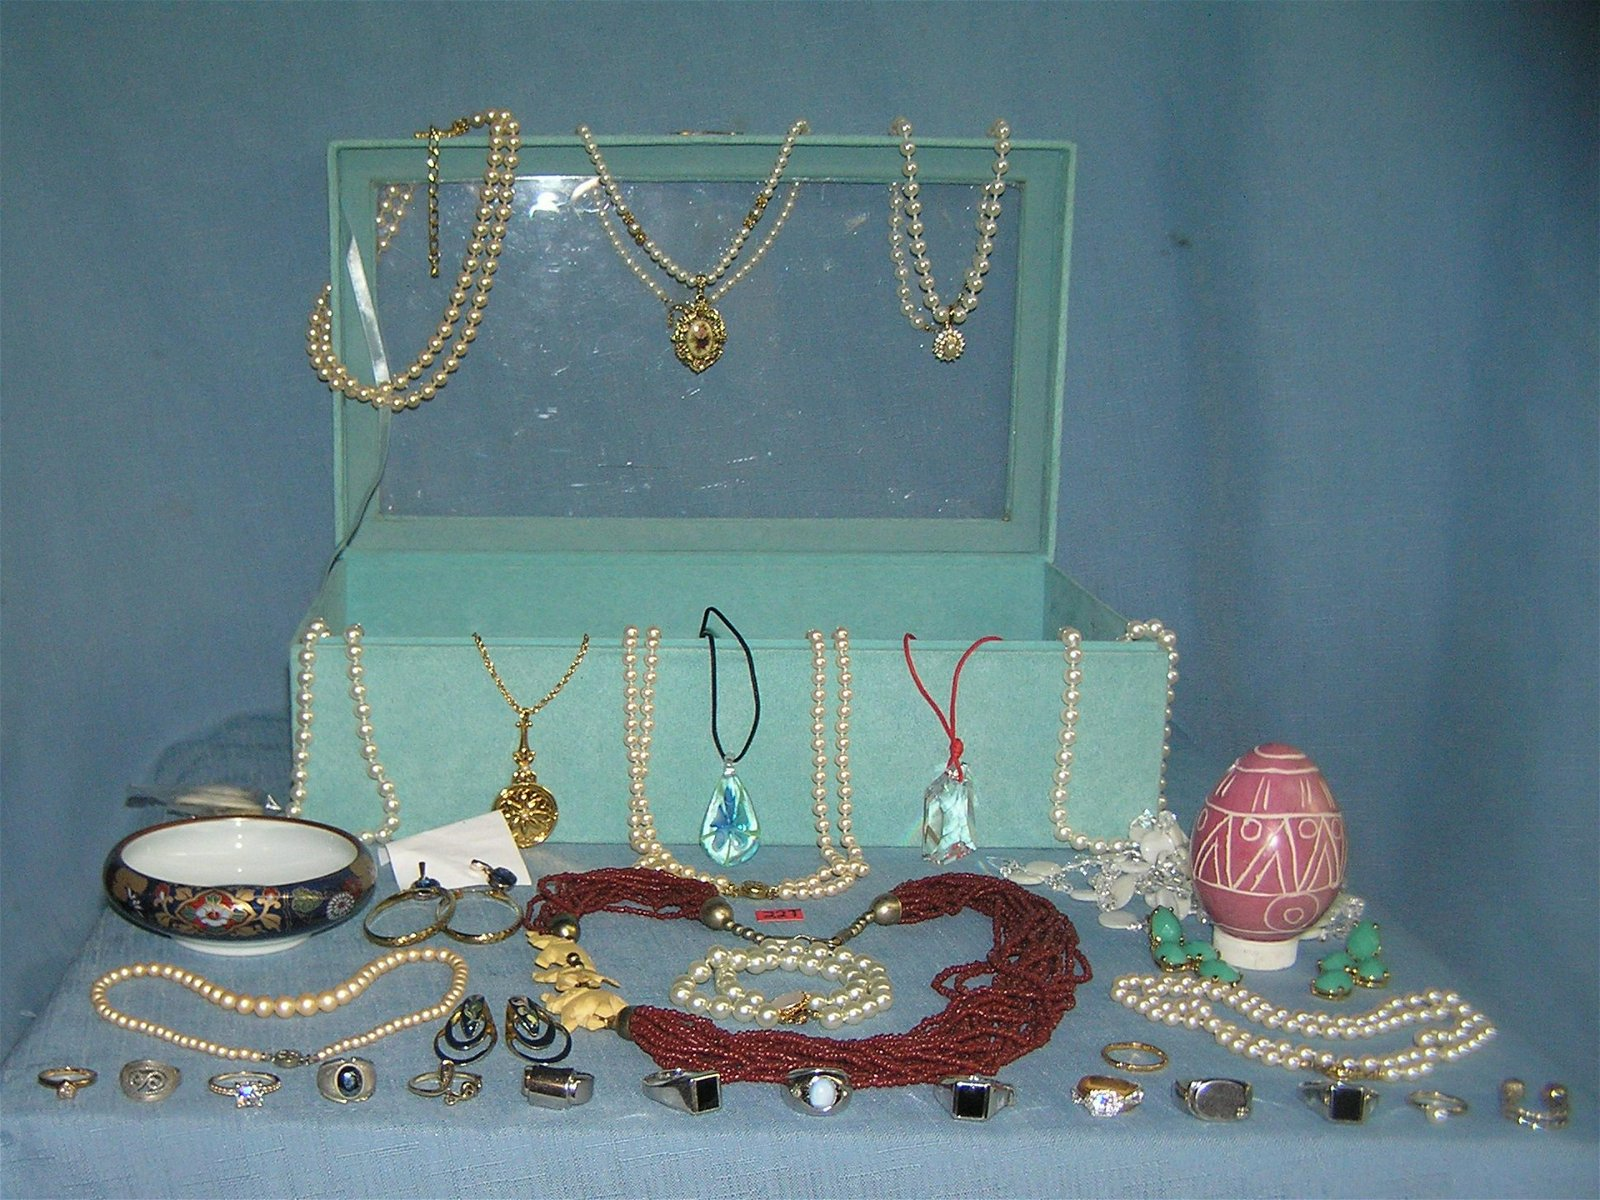 Large collection of vintage jewelry